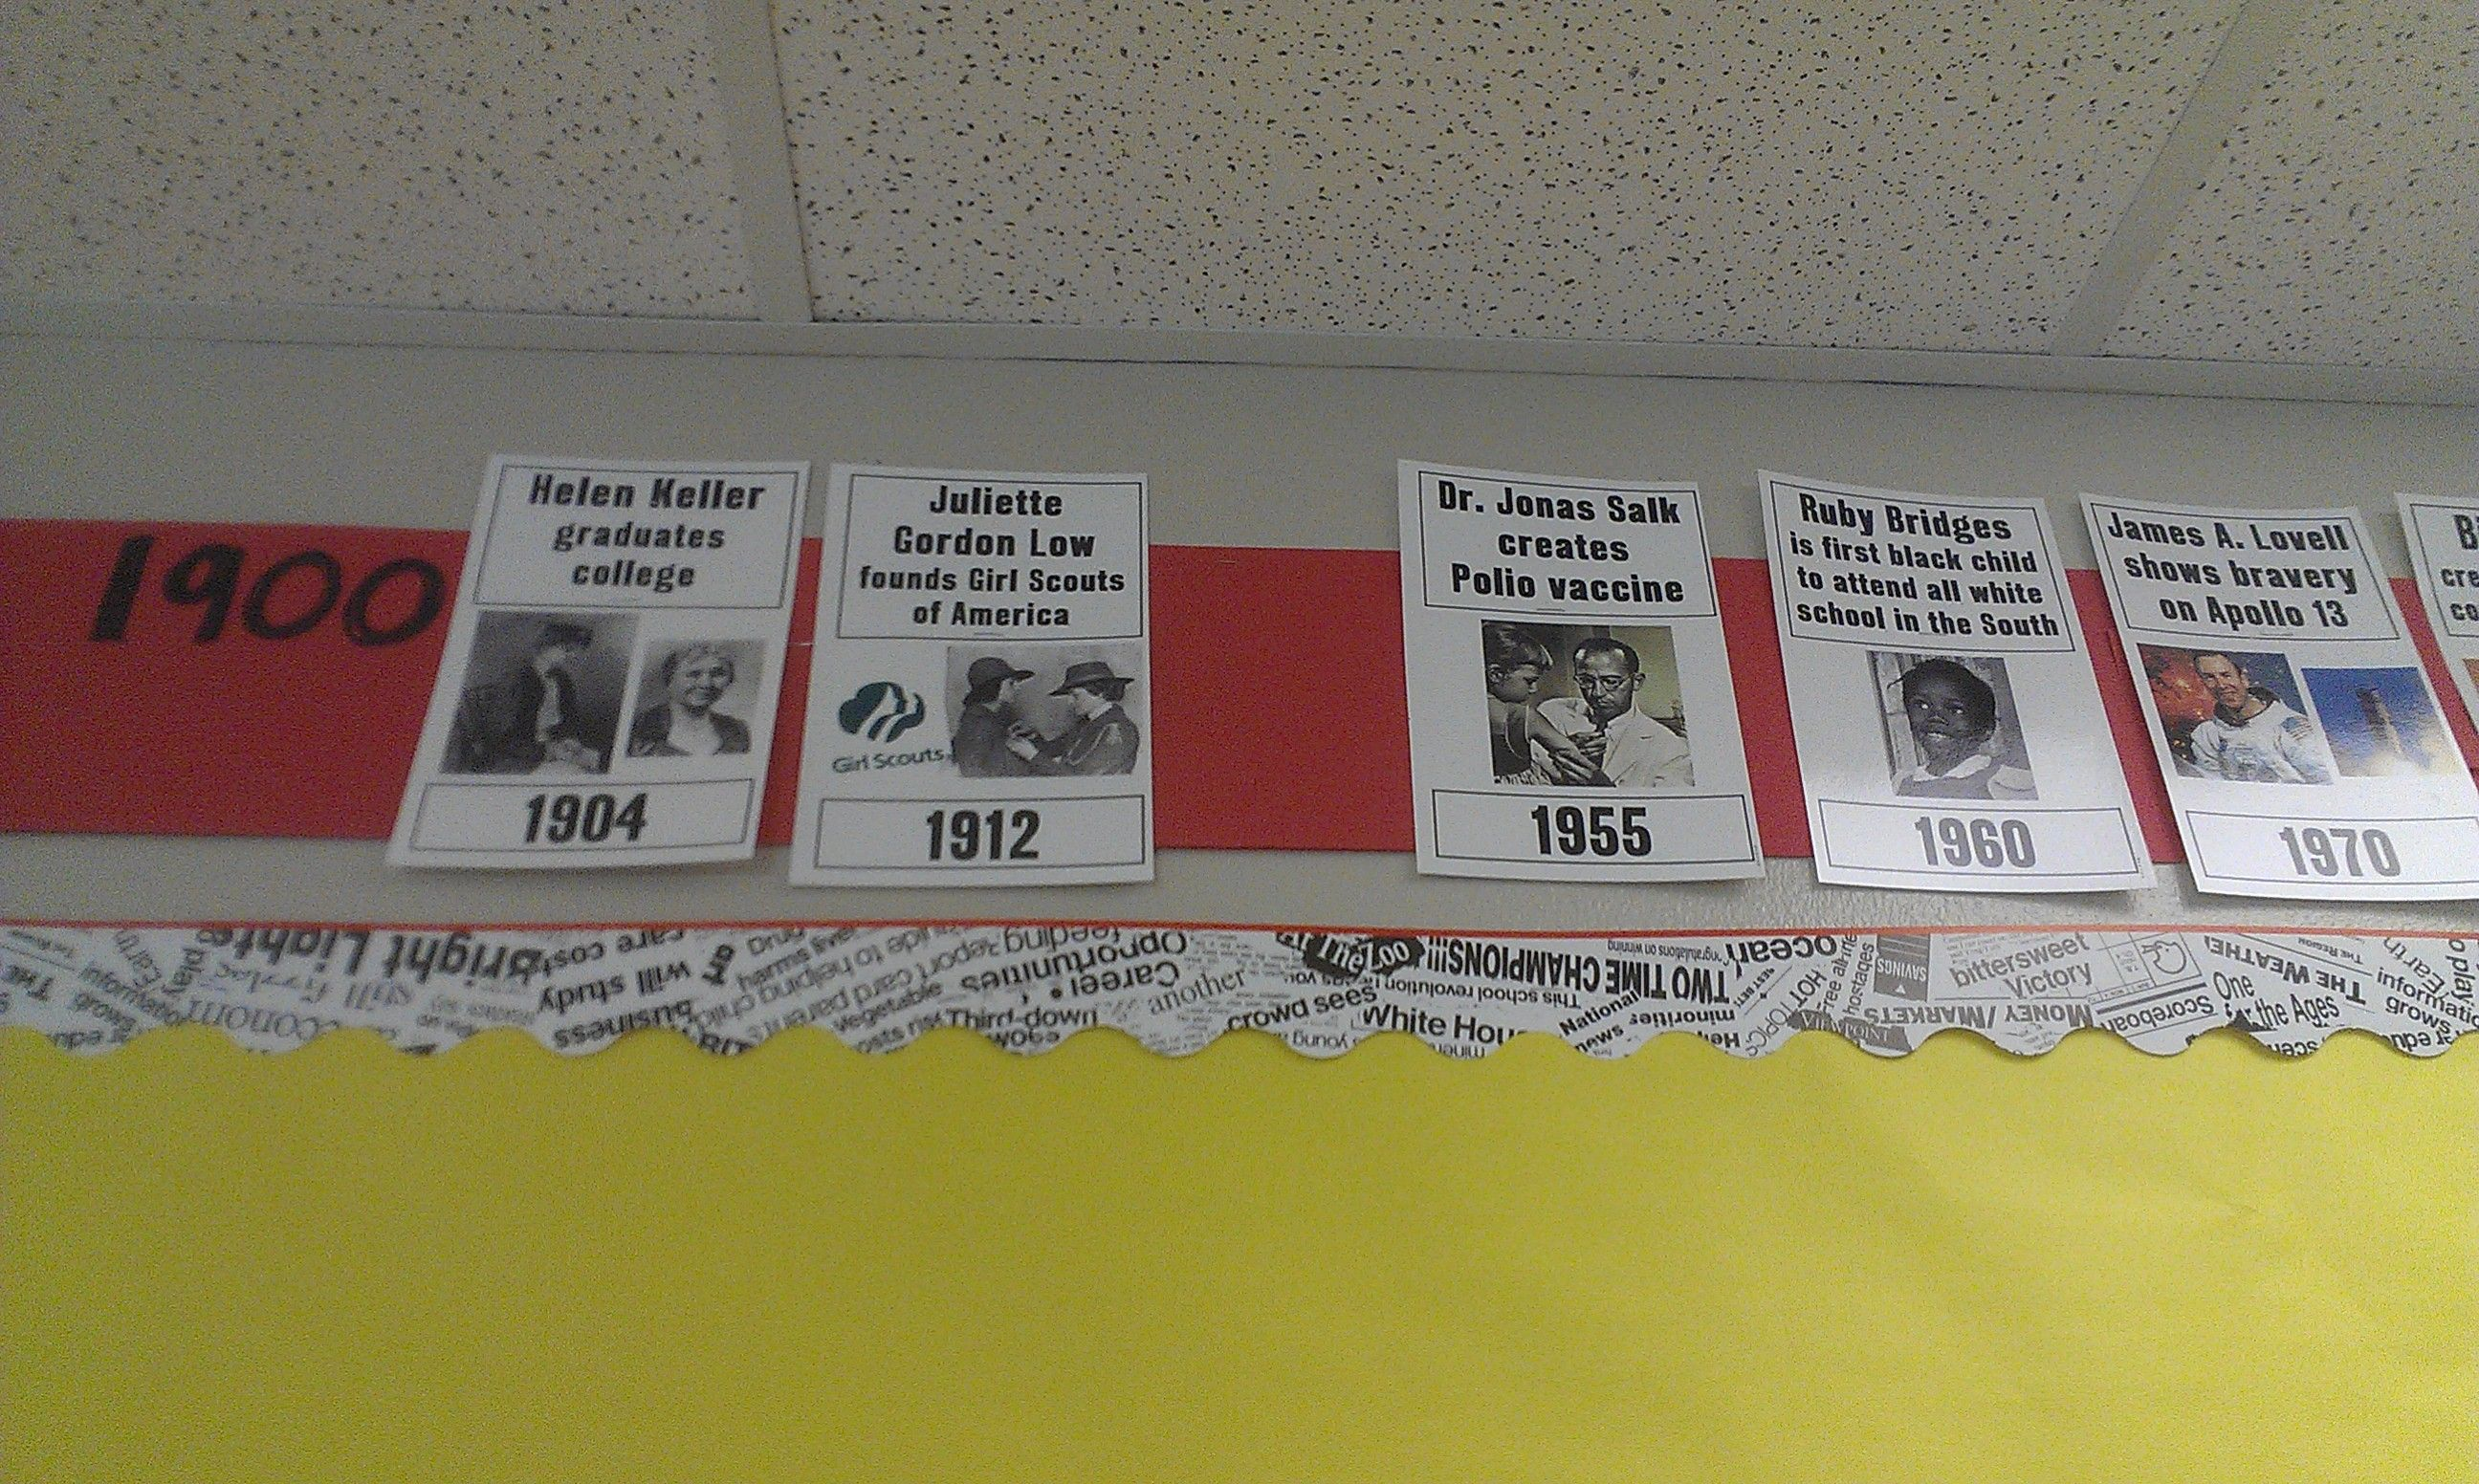 Make a giant timeline showing important events and the people we study in social studies!